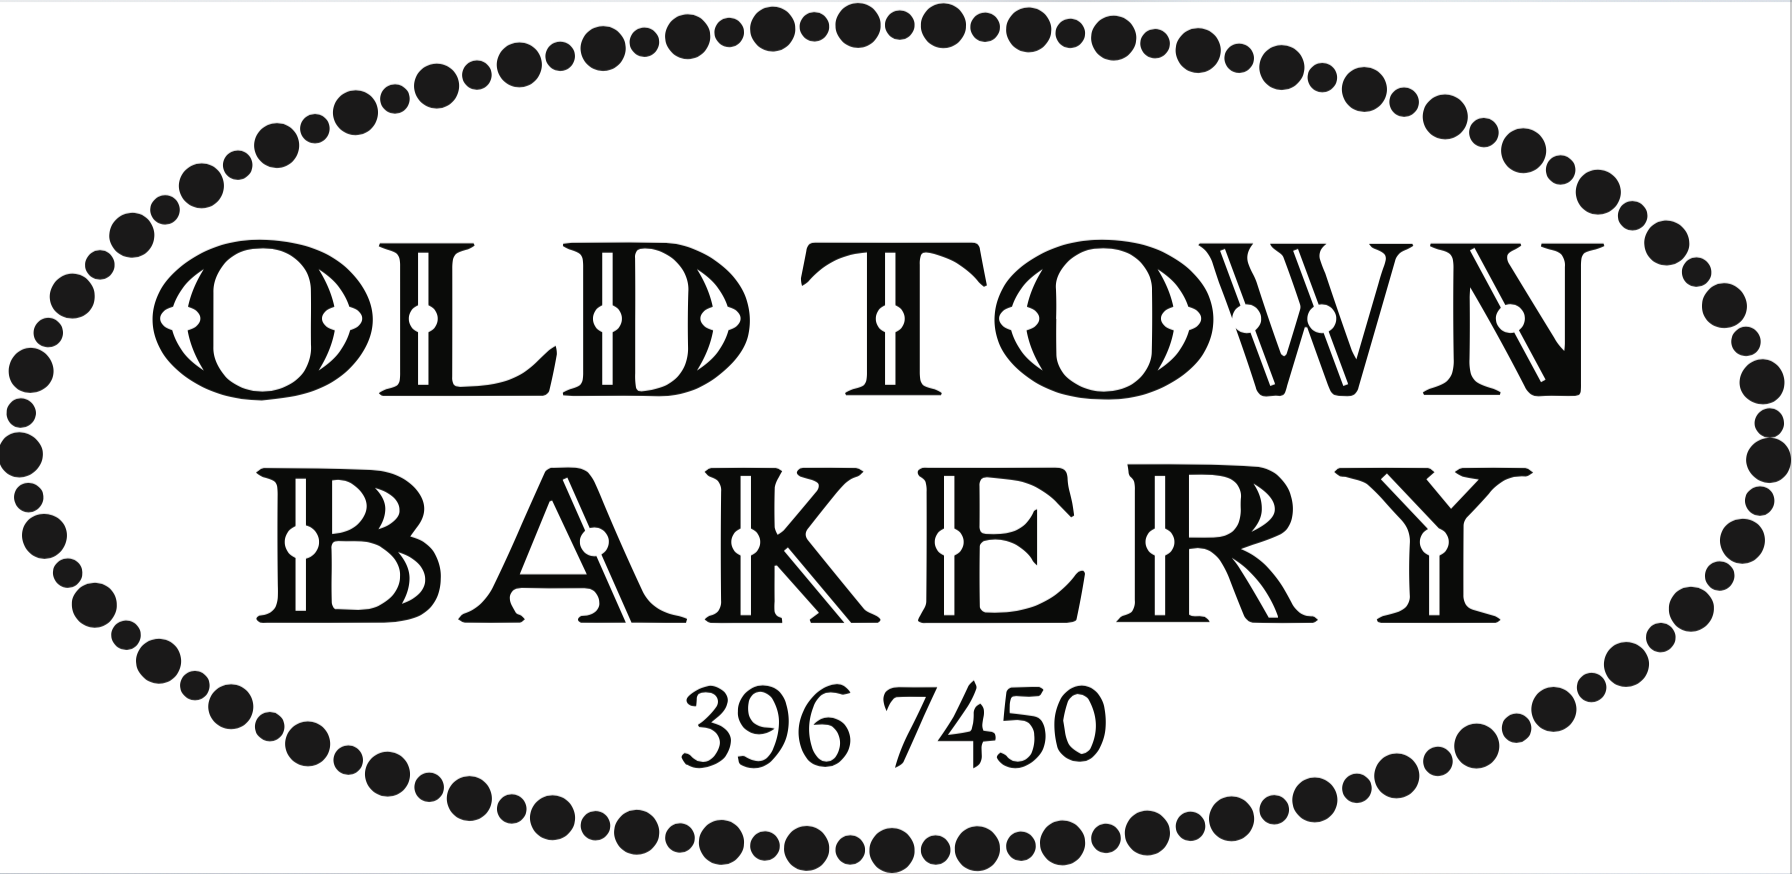 old Town bakery logo key west